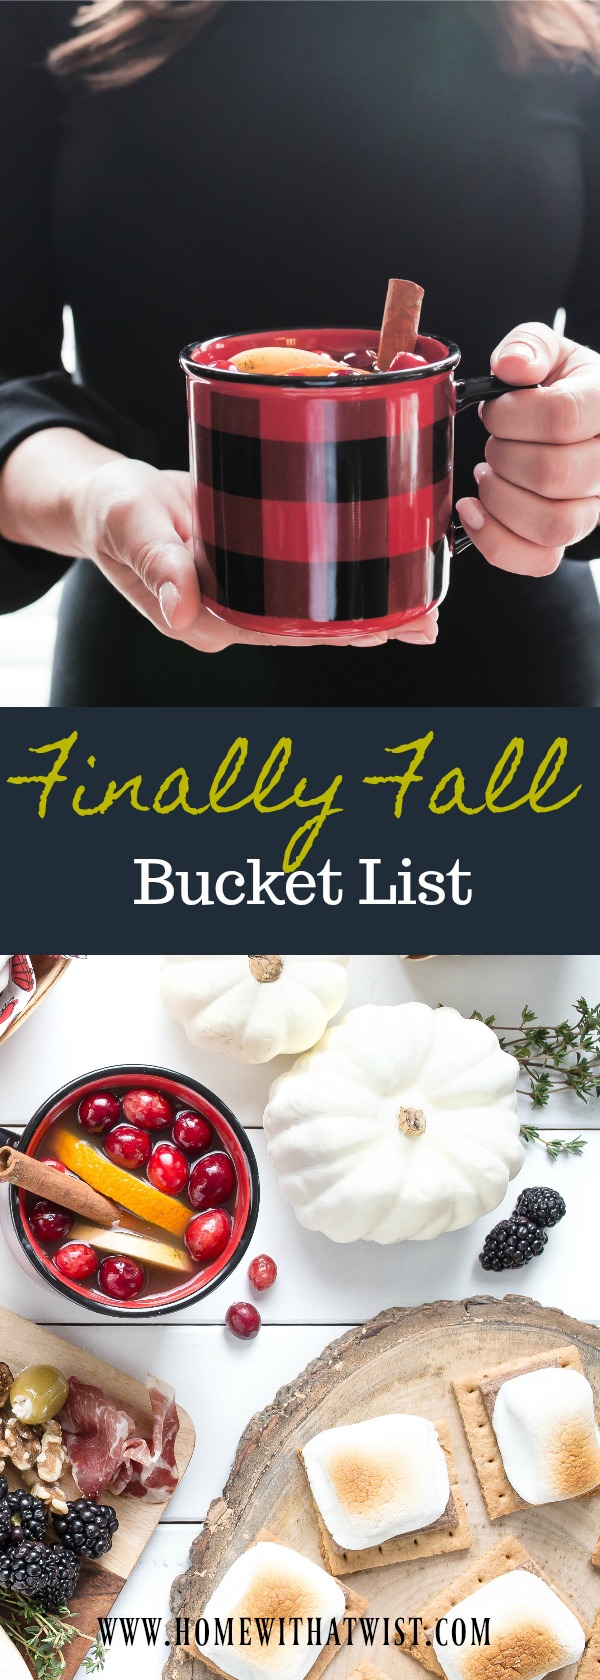 It's Finally Fall — Create Your Bucket List!